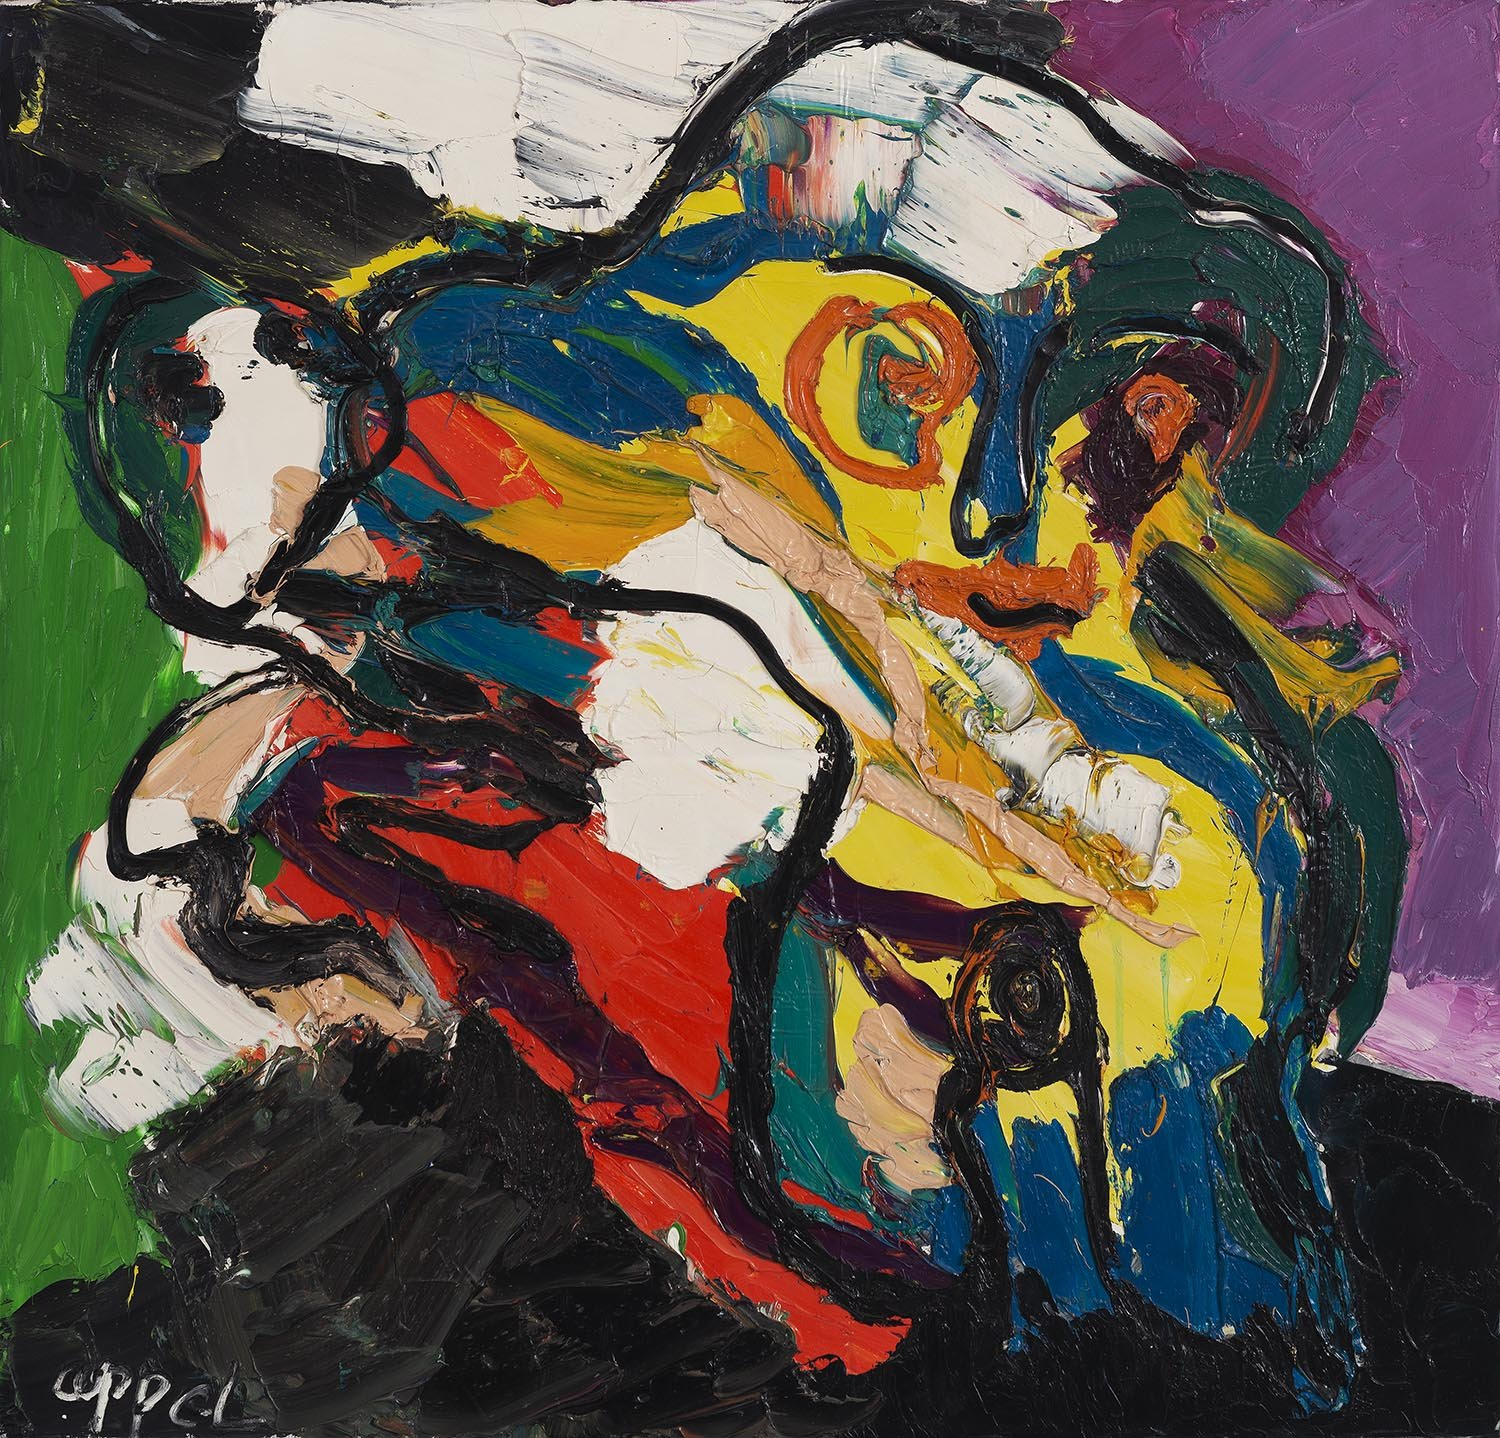 Karel Appel - Untitled - oil on canvas 1974 - 100 x 100 cm